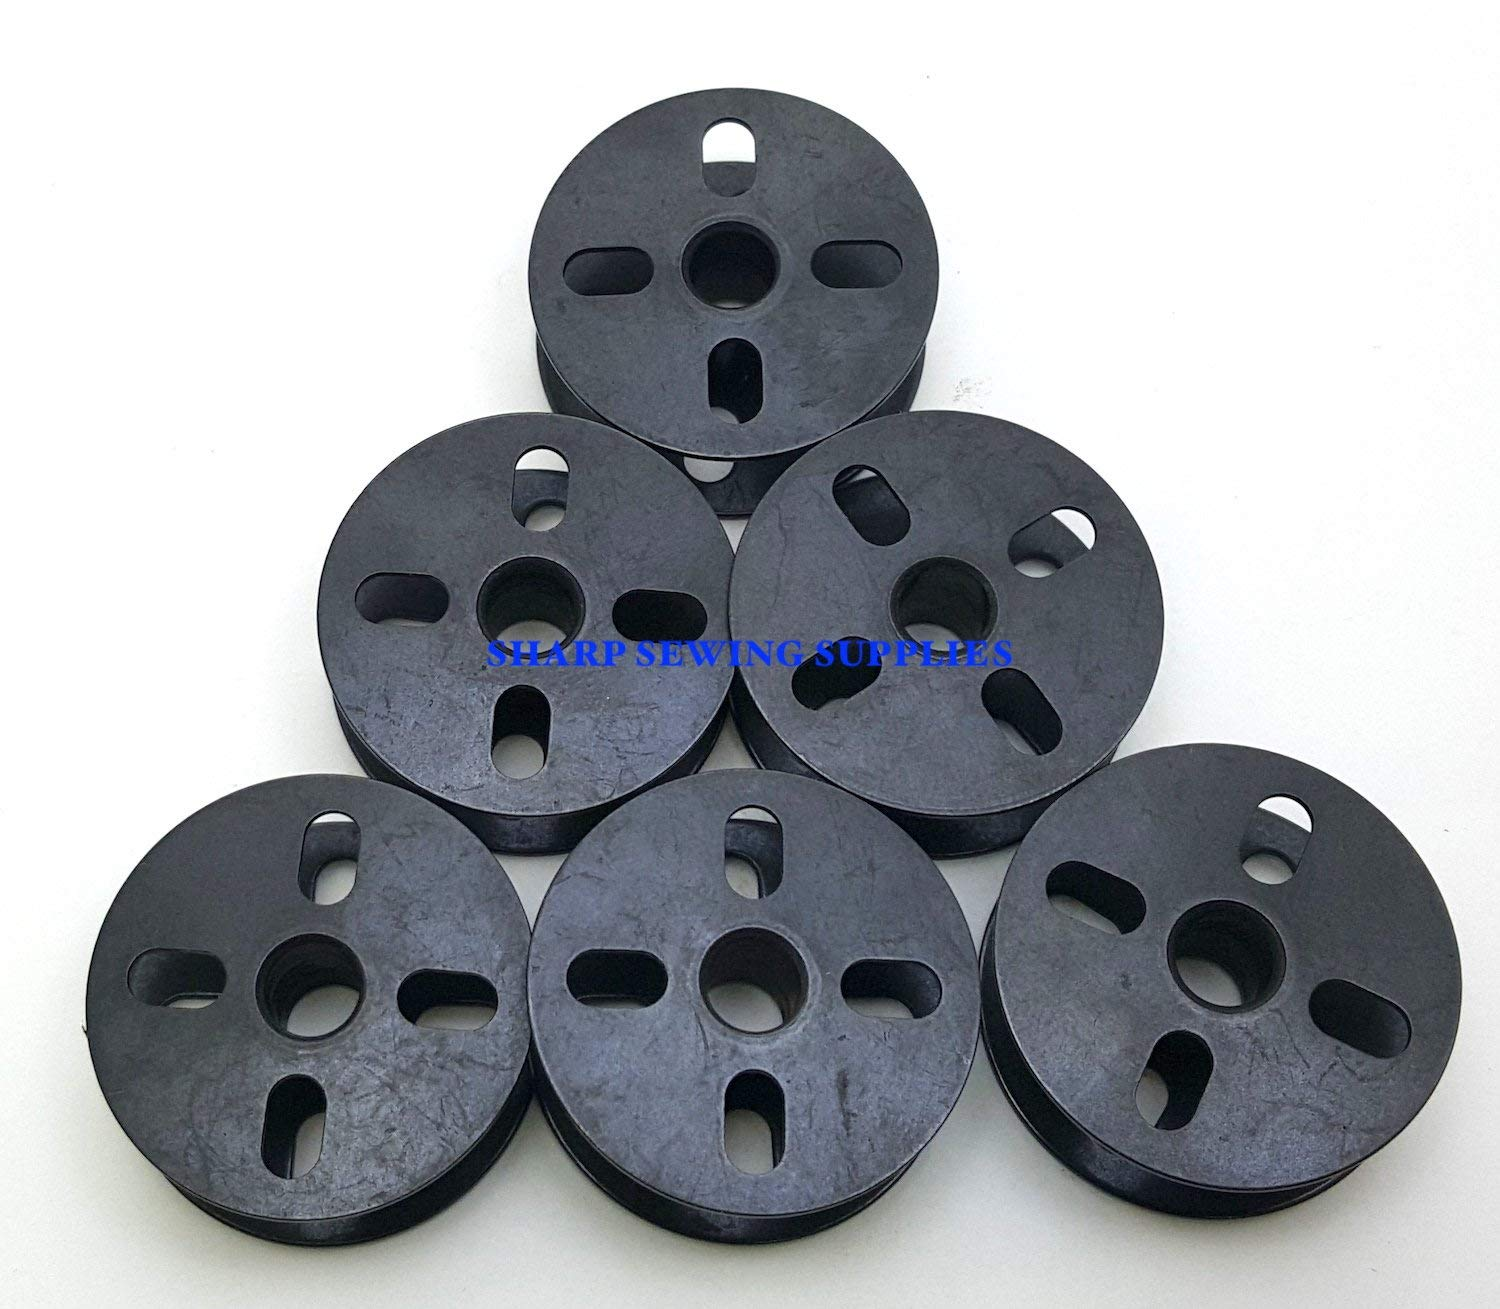 255 225 255RB 227R 5 SETS WALKING FOOT // FEET KIT .supply.from:zeroxpress1 NEW FOR CONSEW 206RB 226R